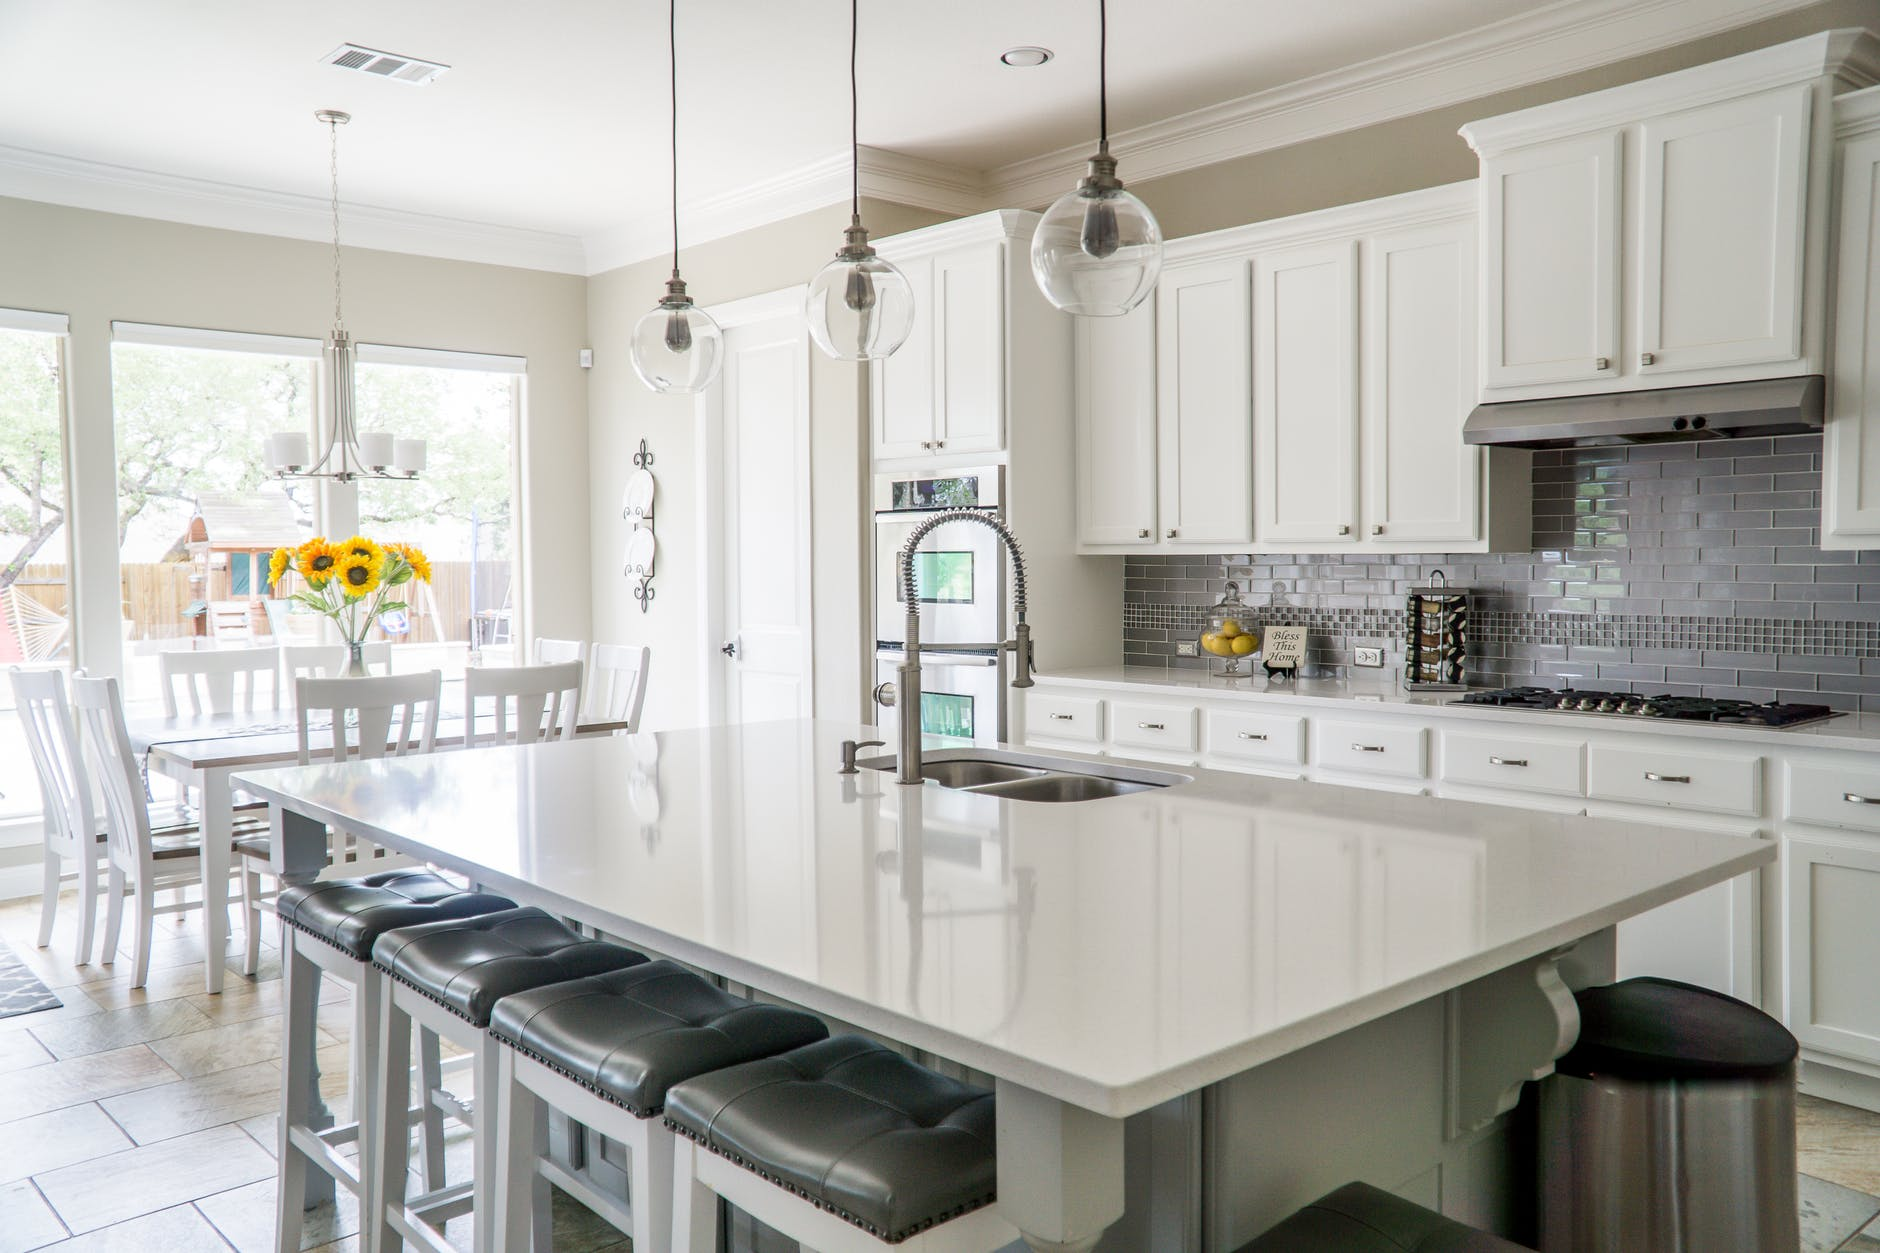 Exodus White Granite Countertop Ideas - Liquid Image